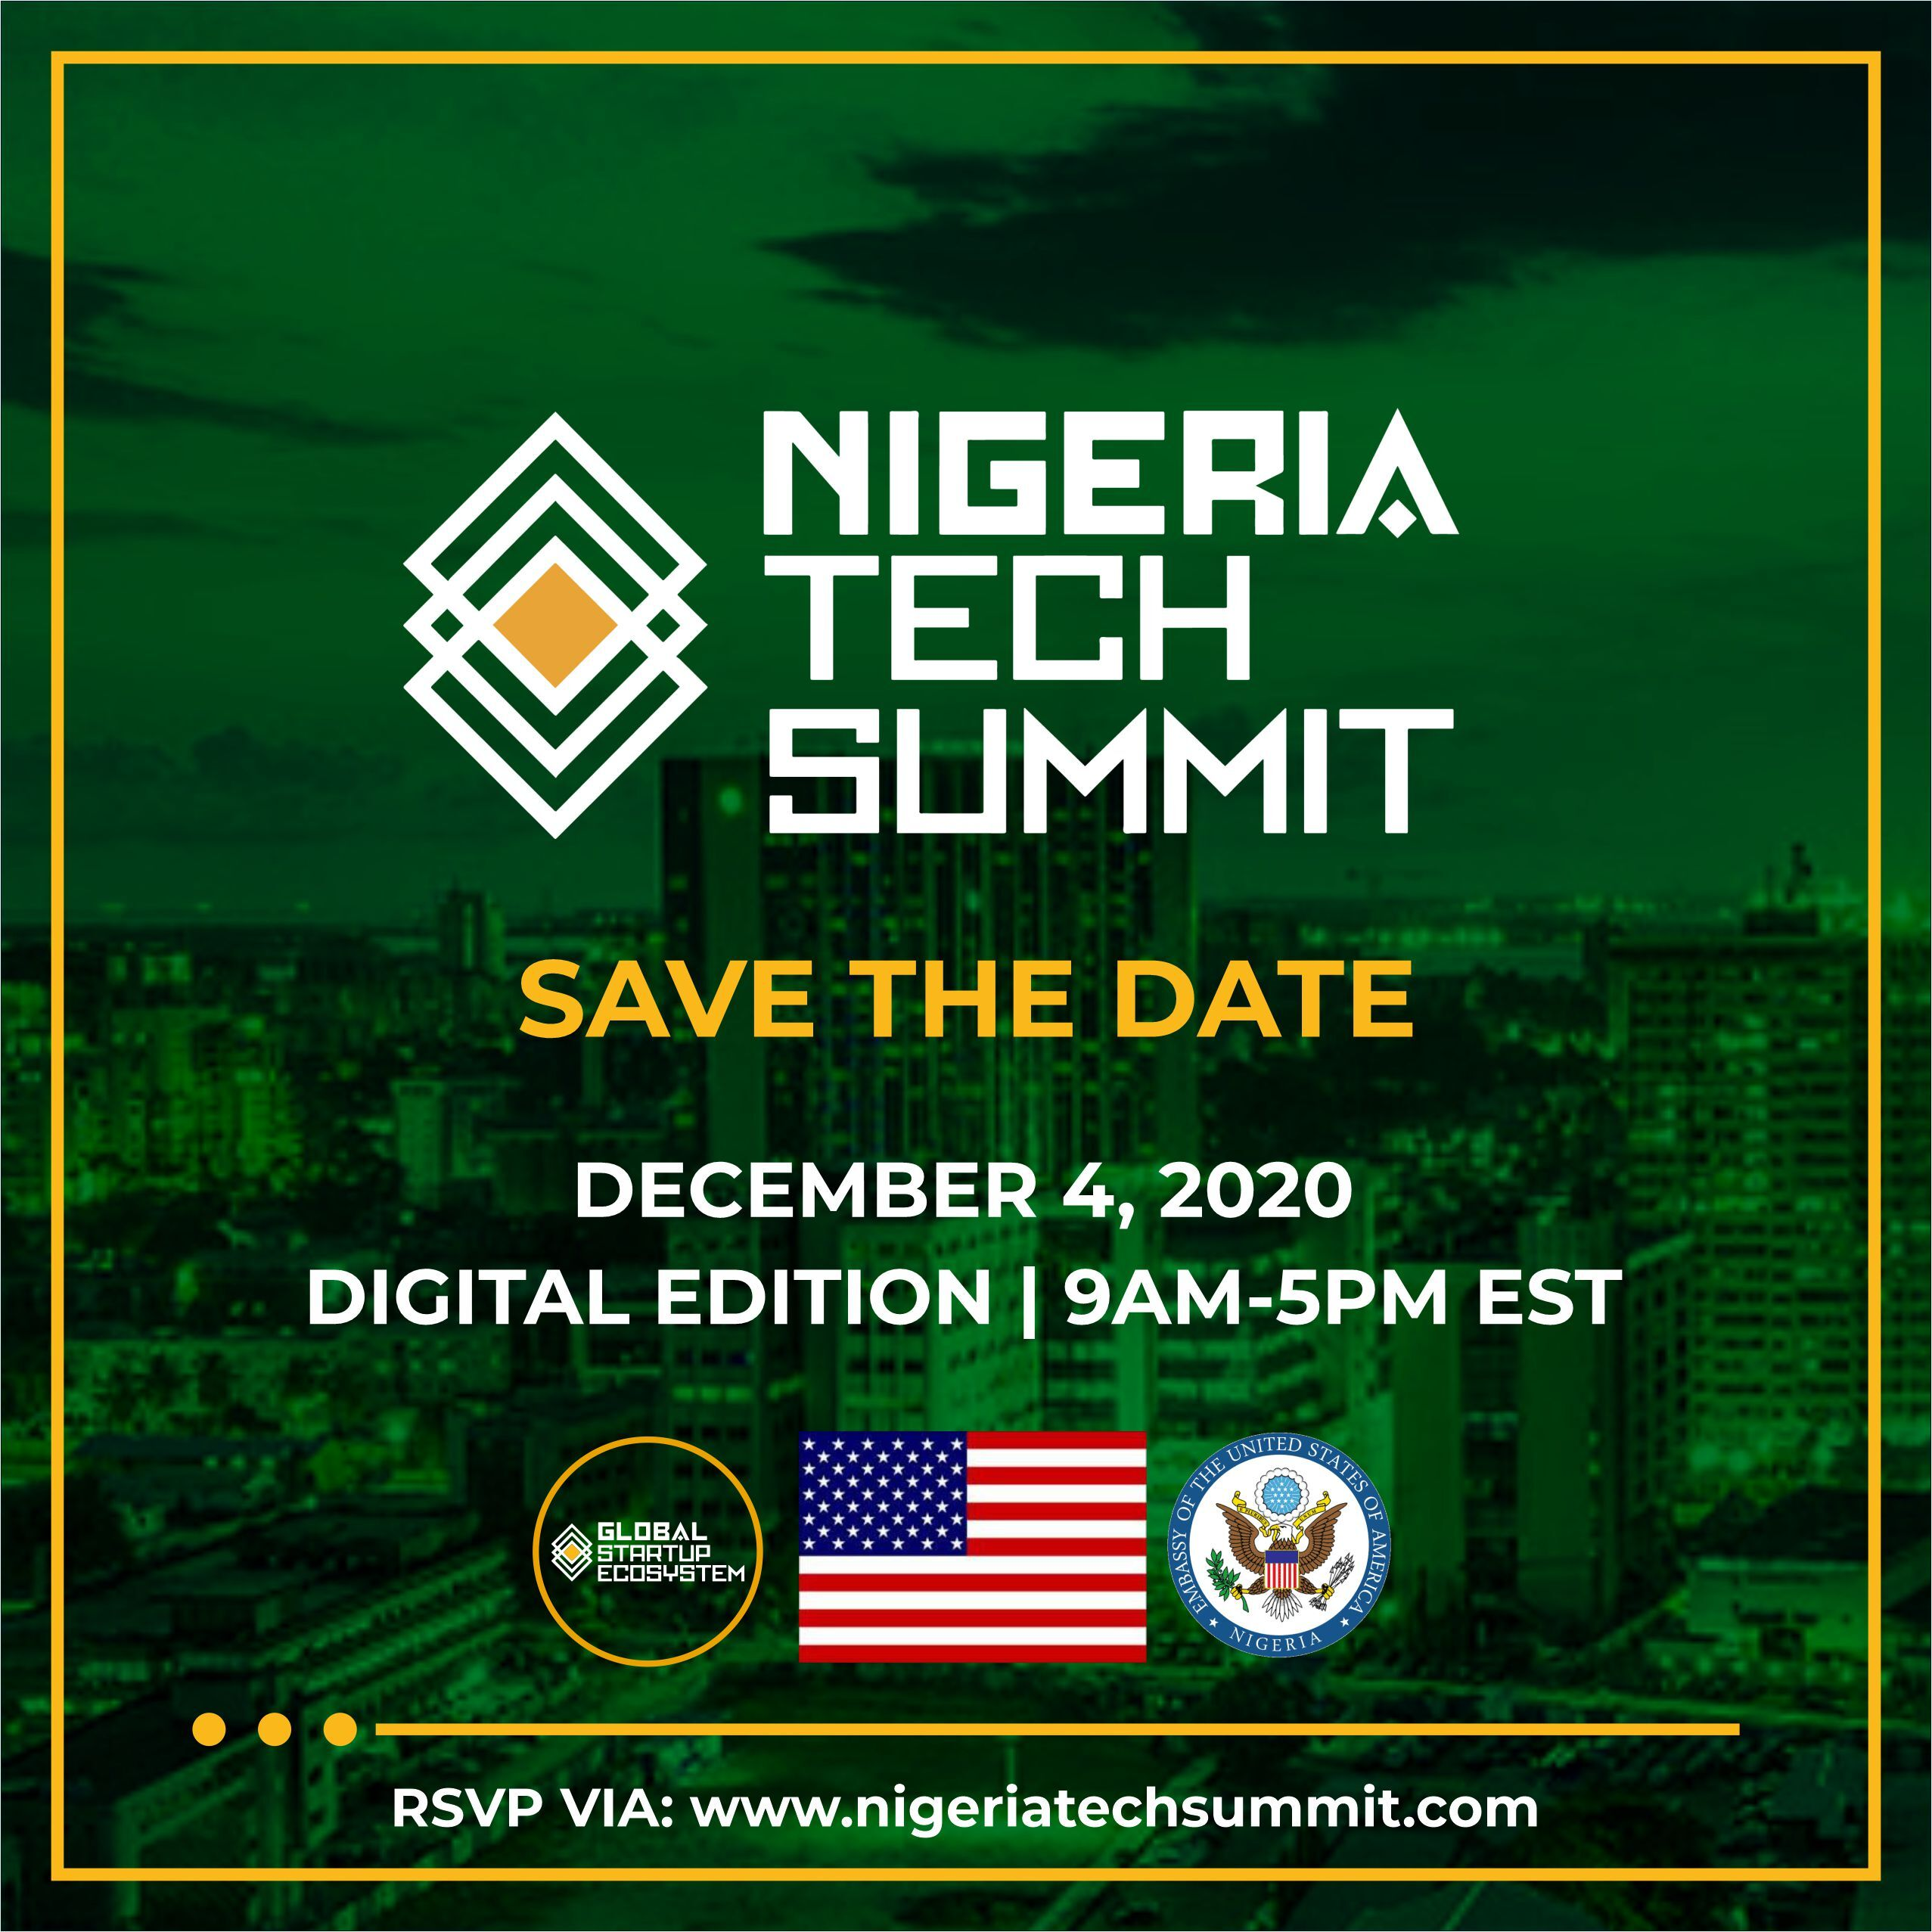 Nigeria Tech Summit 2020 Post free event in Nigeria using tickethub.ng, buy and sell tickets to event